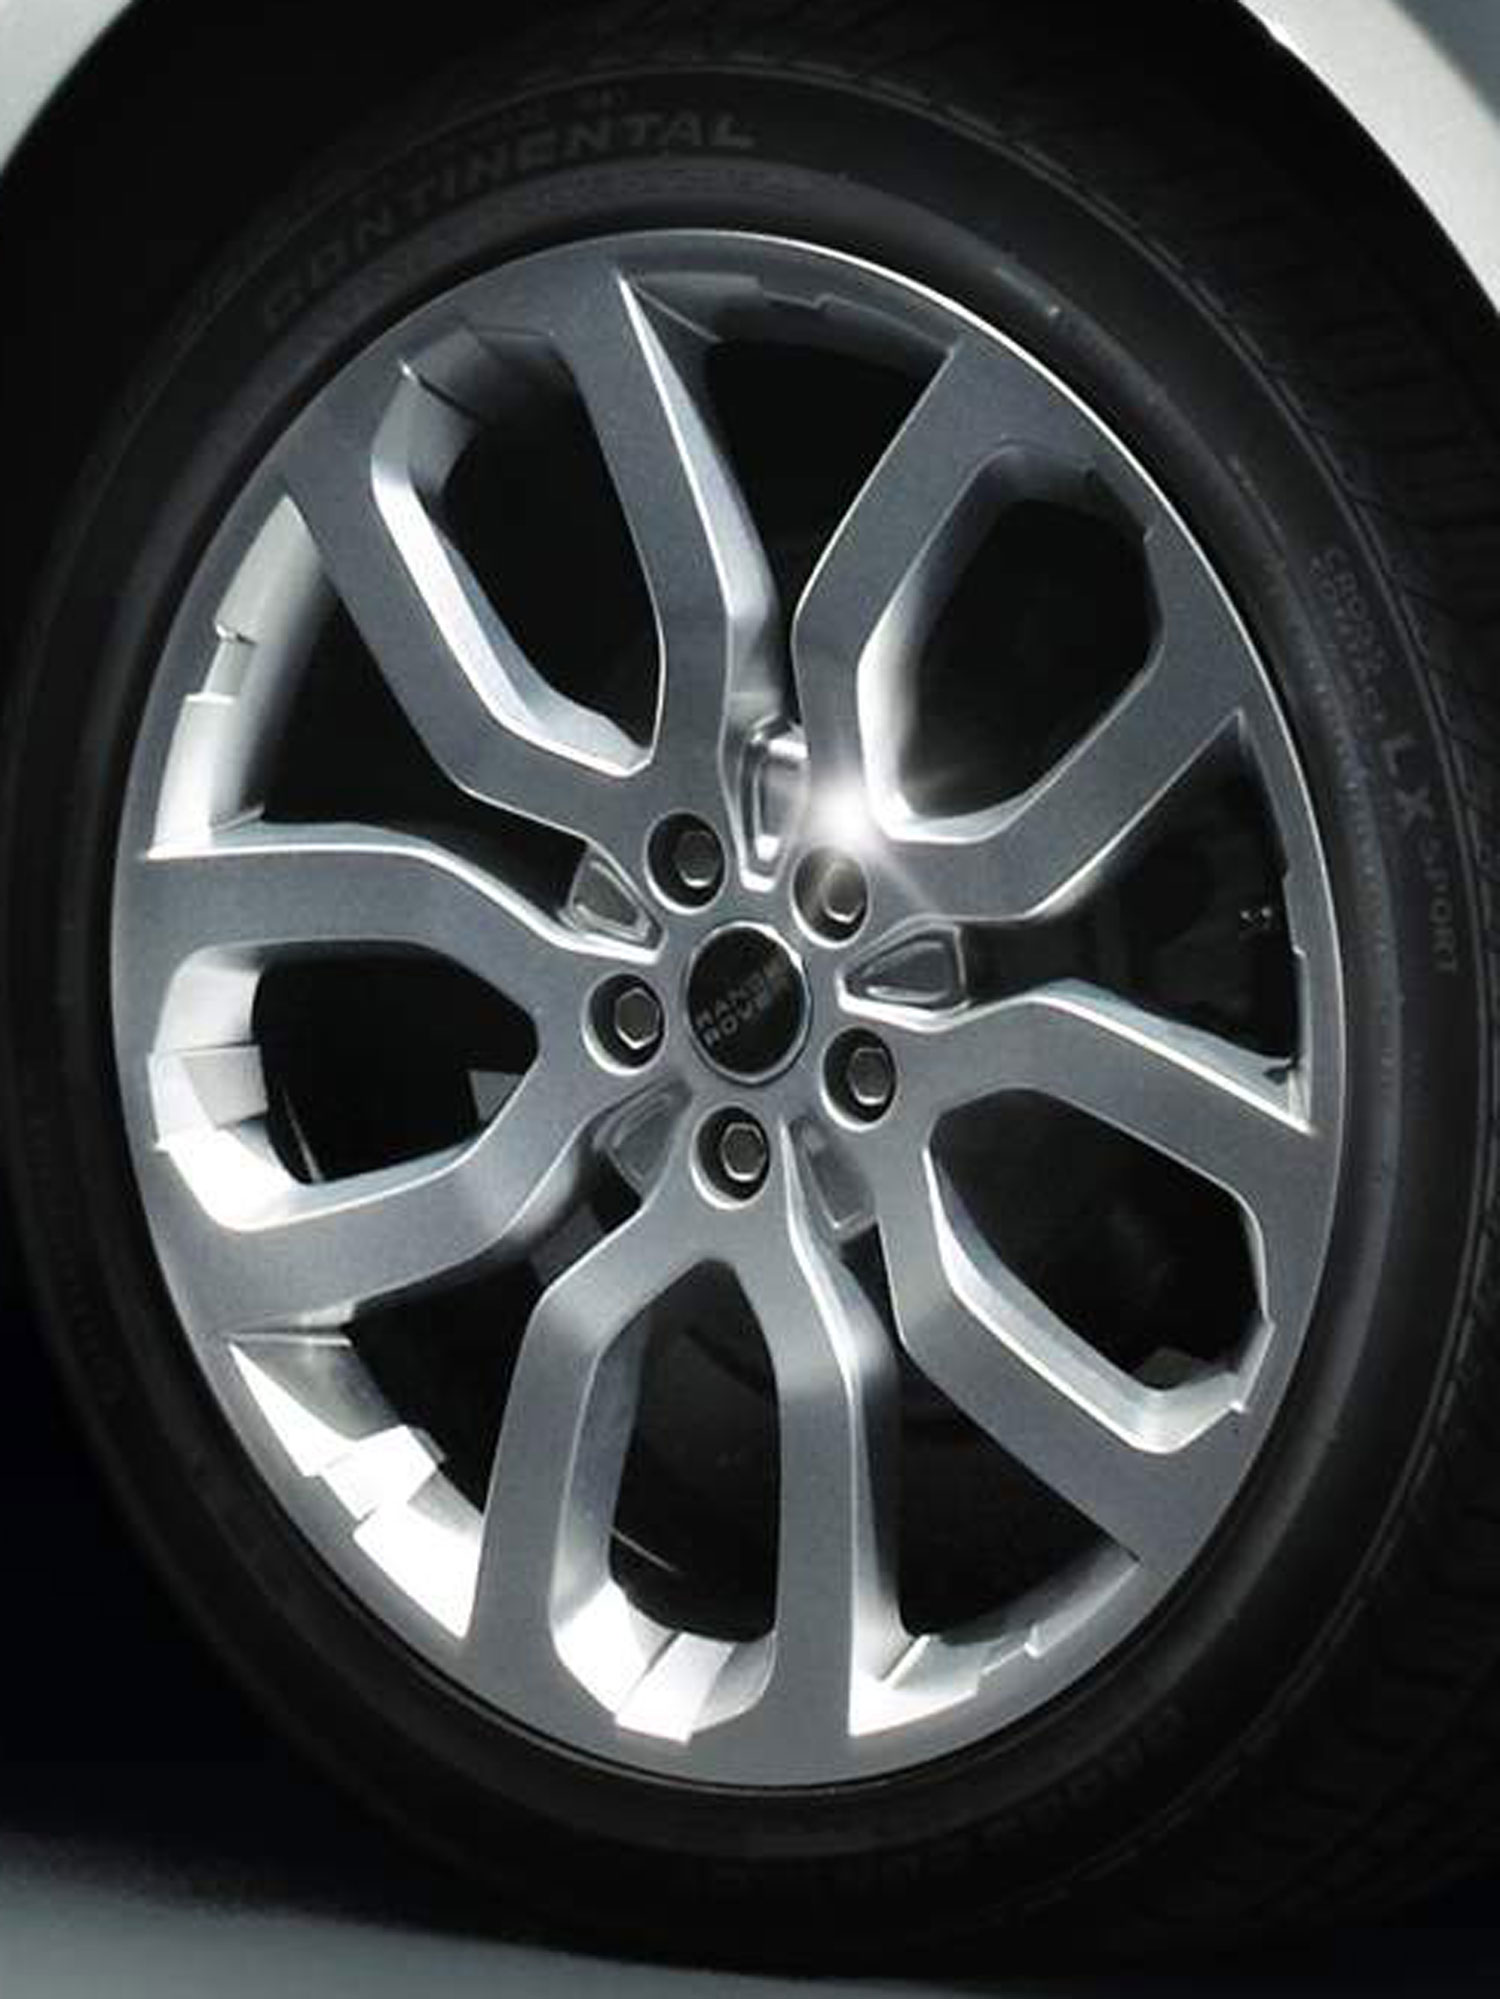 2013 Range Rover Five Spoke Wheel Closeup